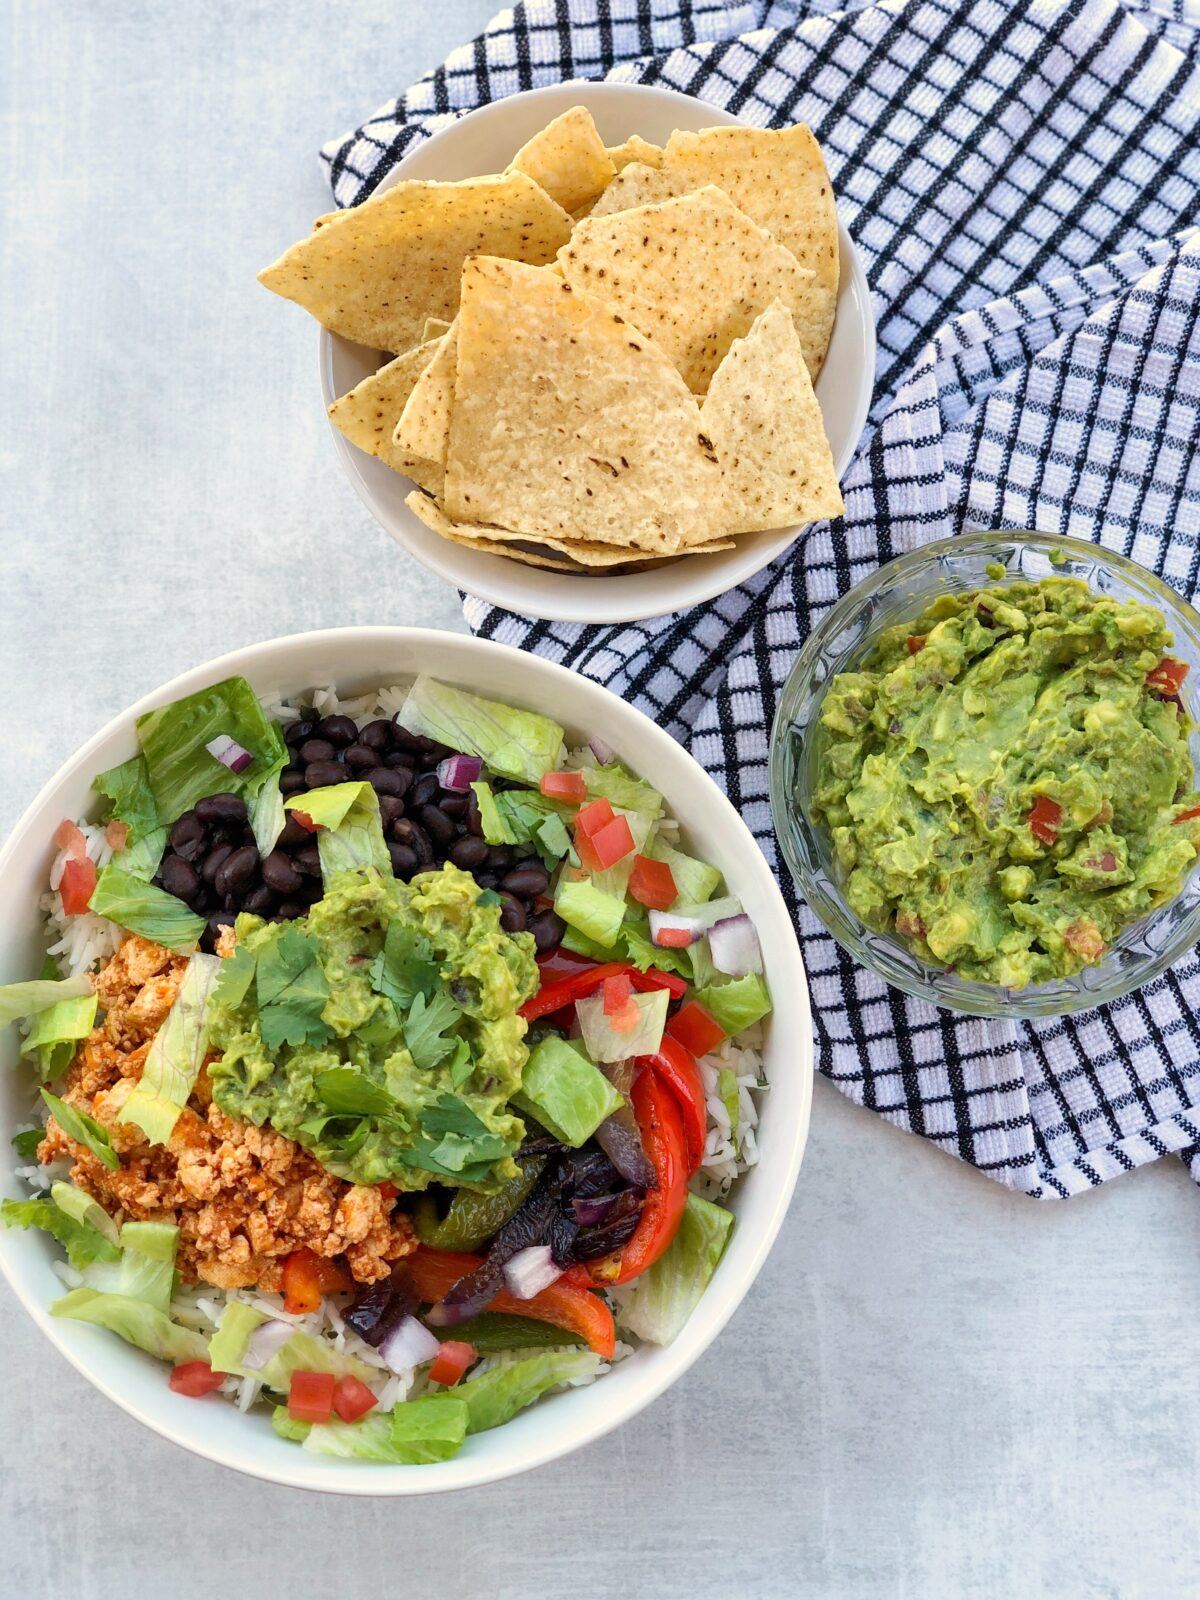 Homemade Sofritas Burrito Bowl with Cilantro Lime Rice with Chips and Guacamole